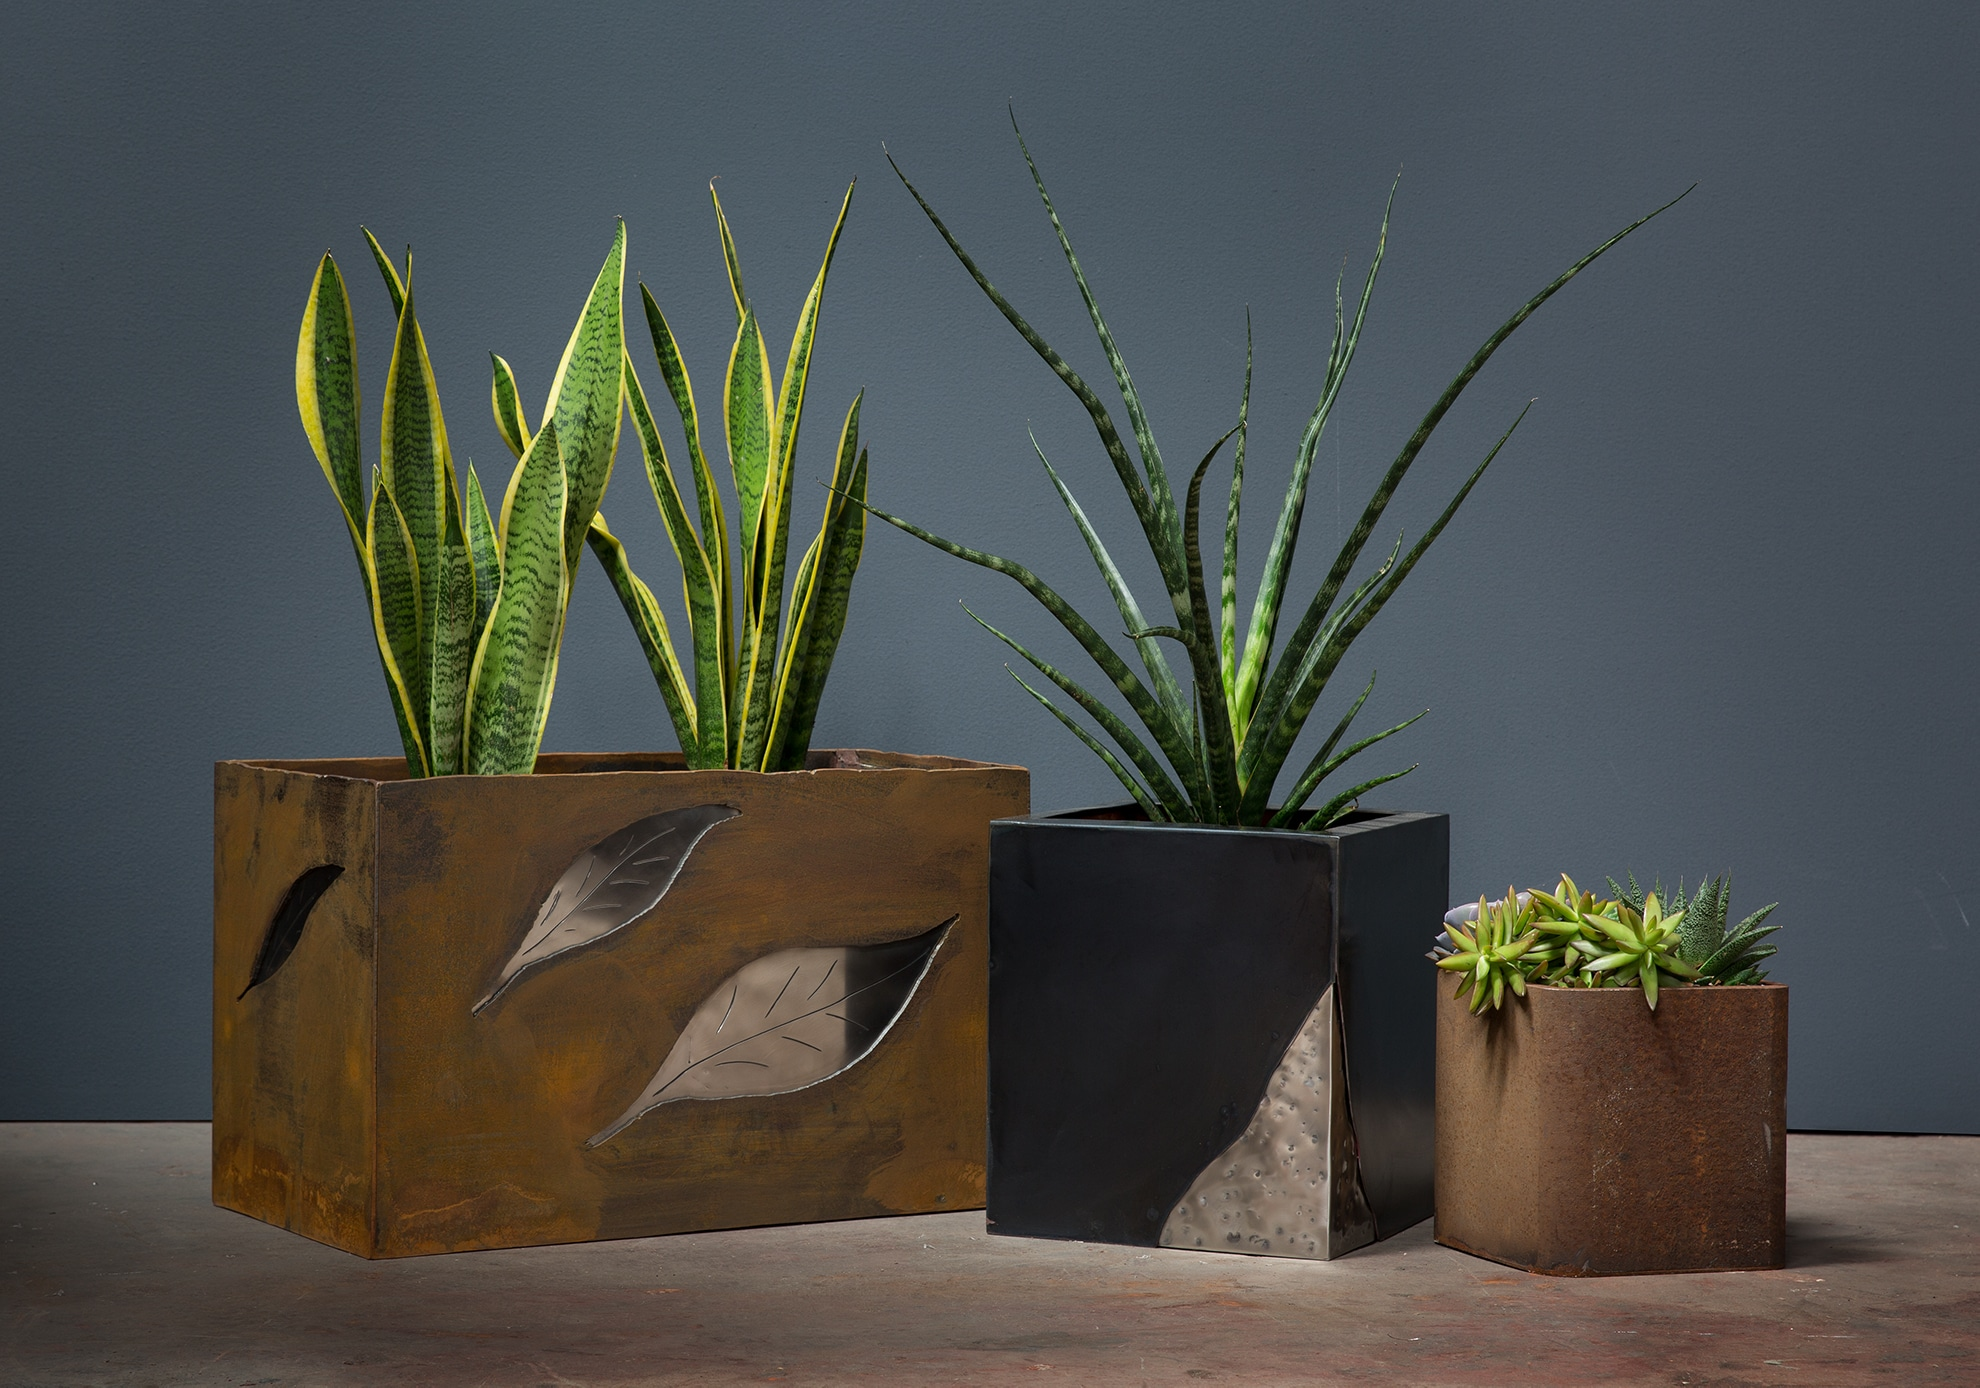 3 planter boxes with mixed metals